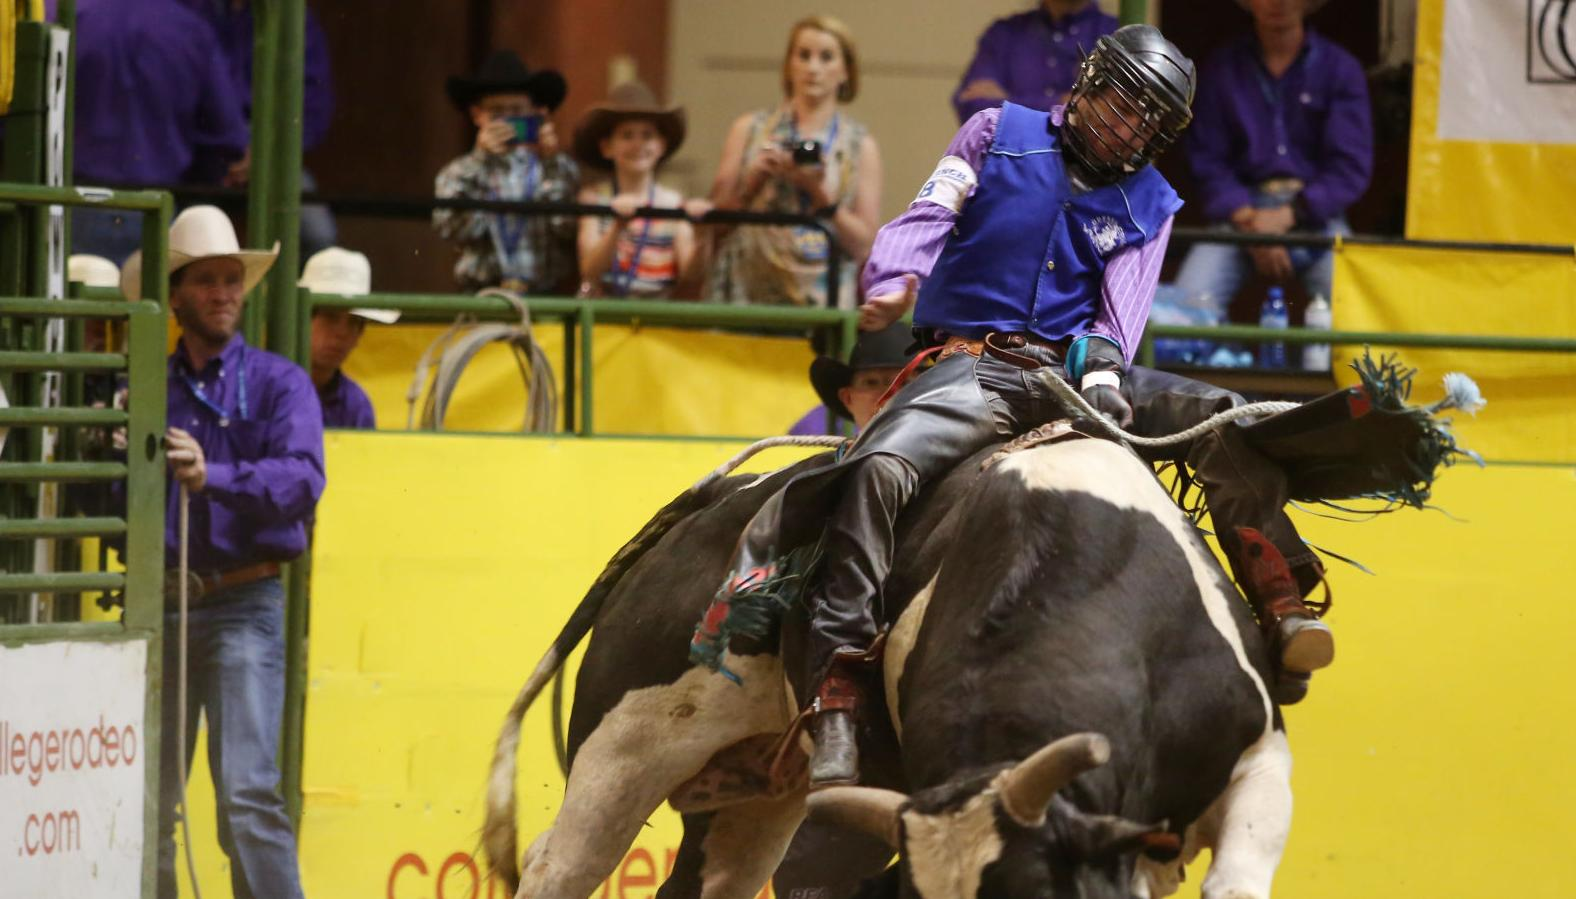 Rodeo rider who was stepped on by bull continues to make progress